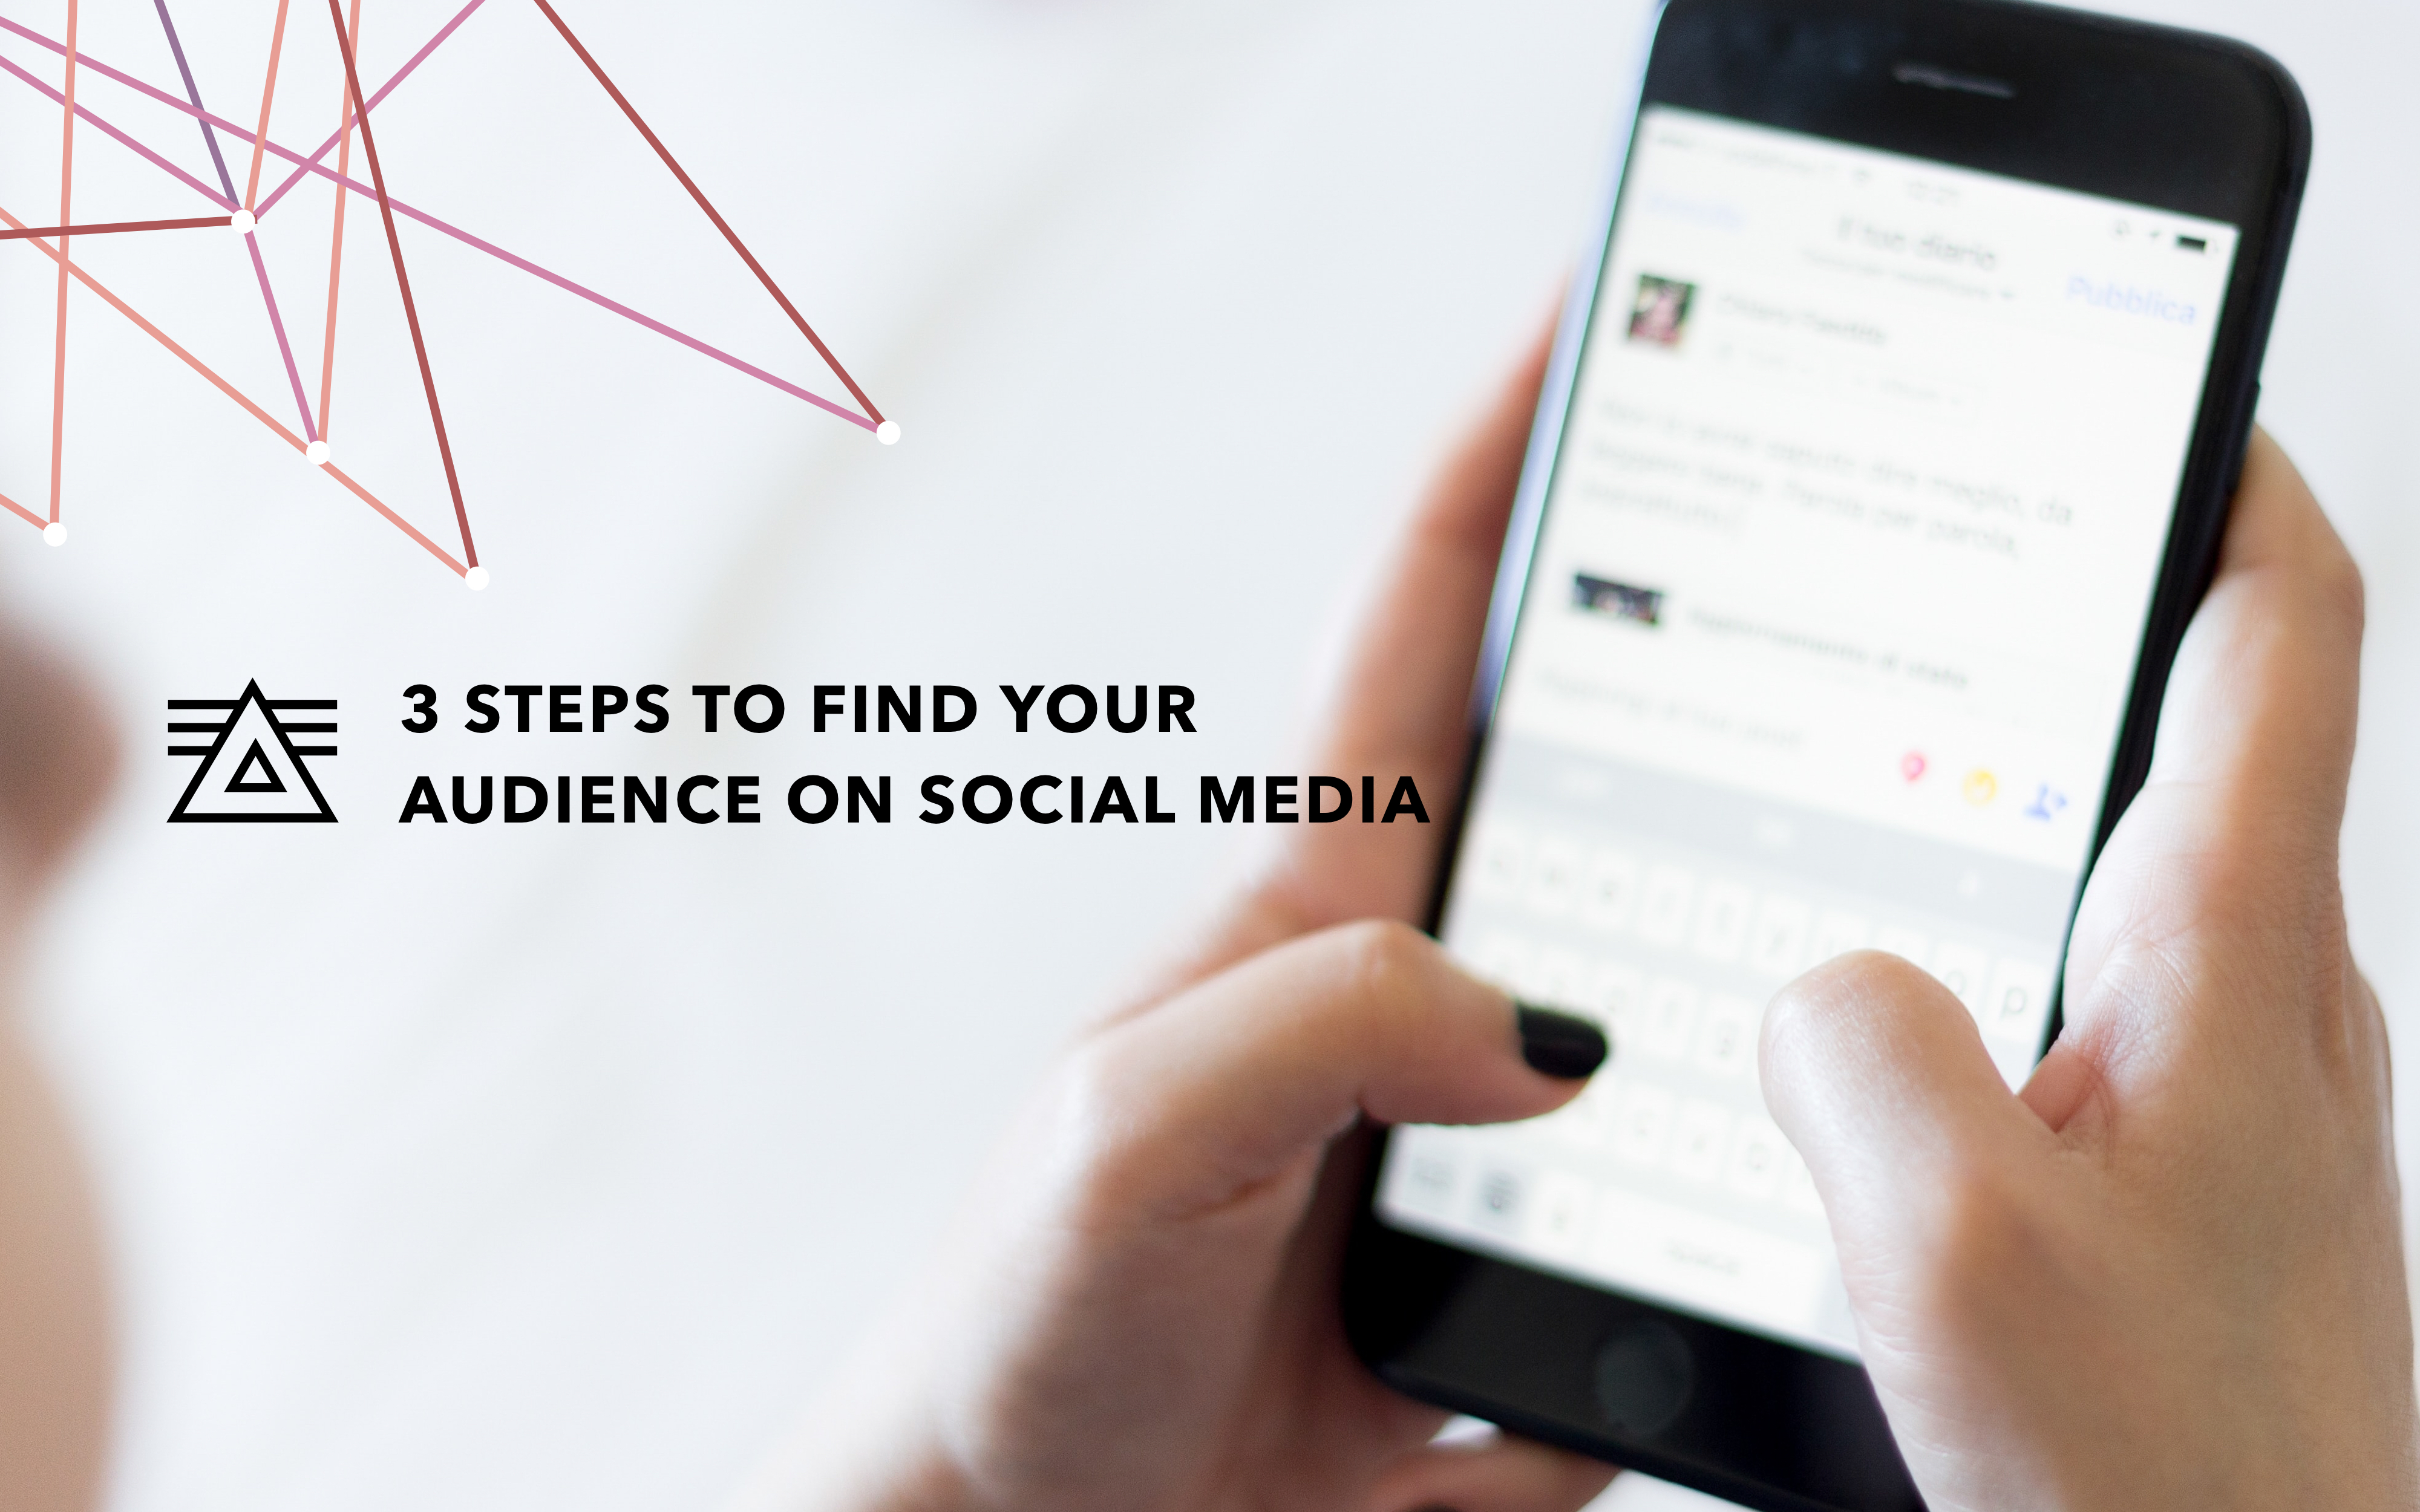 Find you audience on social media